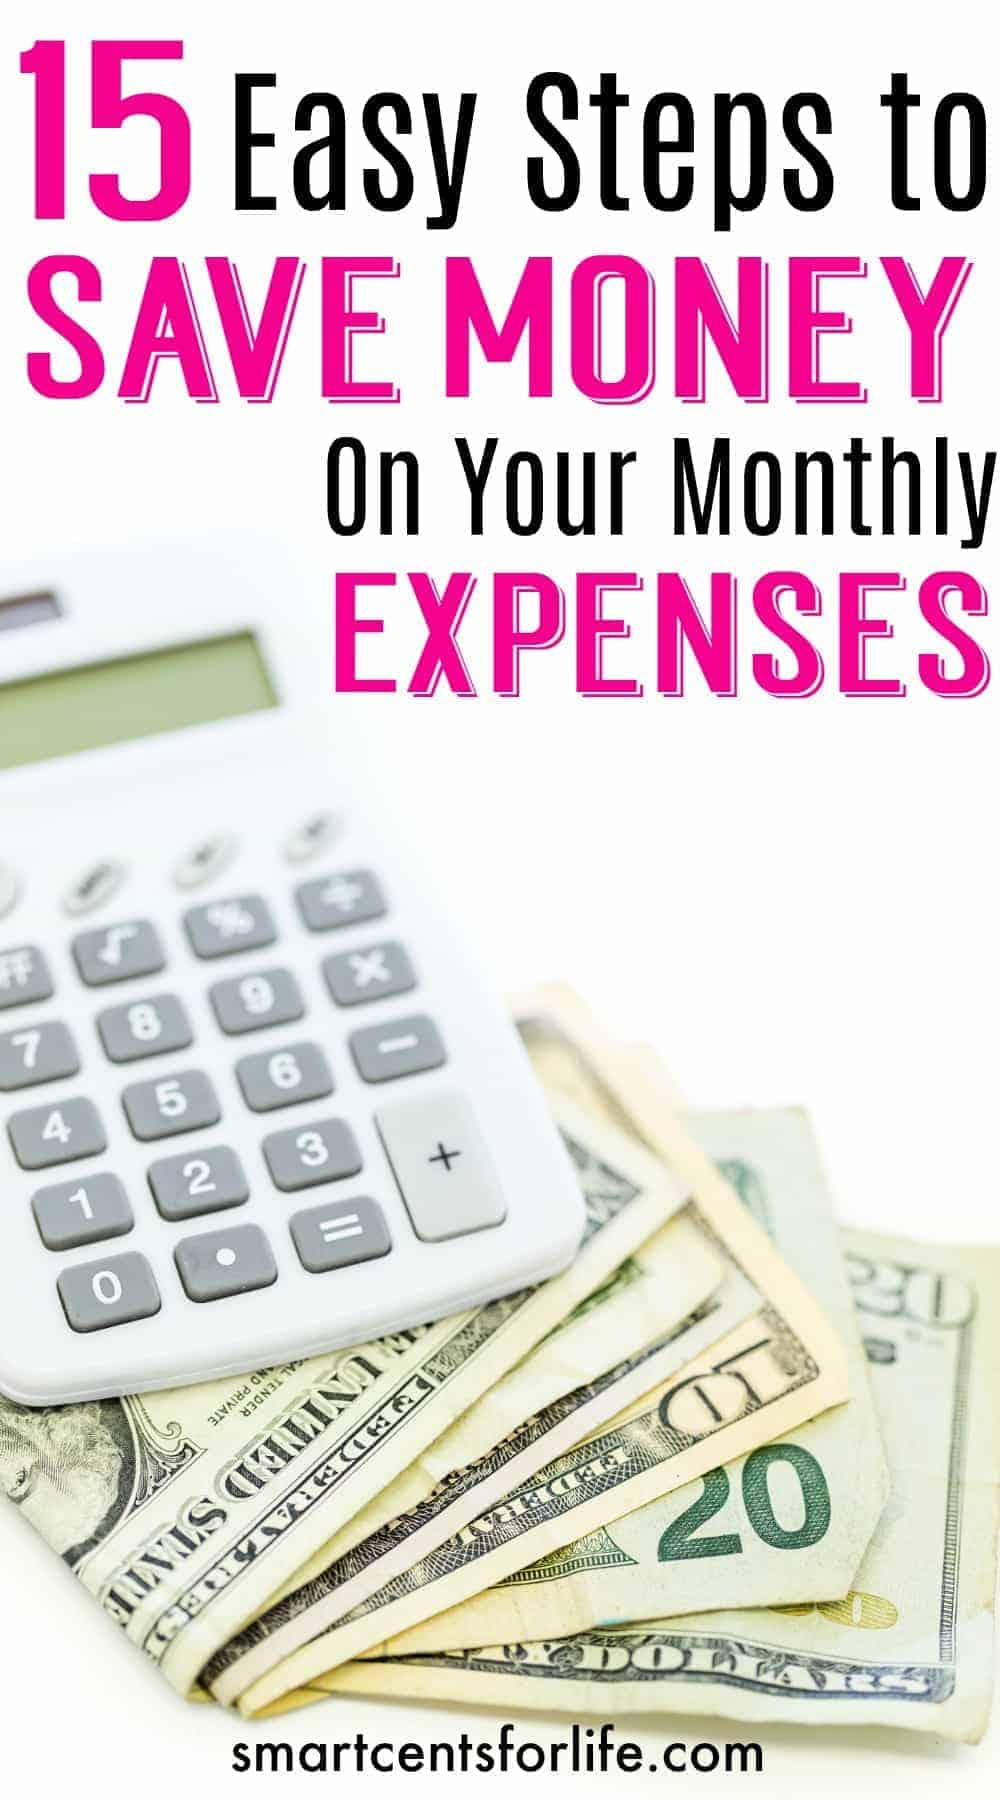 These 15 tips will save you money at home. You can save hundreds of dollars a month by just making some adjustments to your monthly bills.